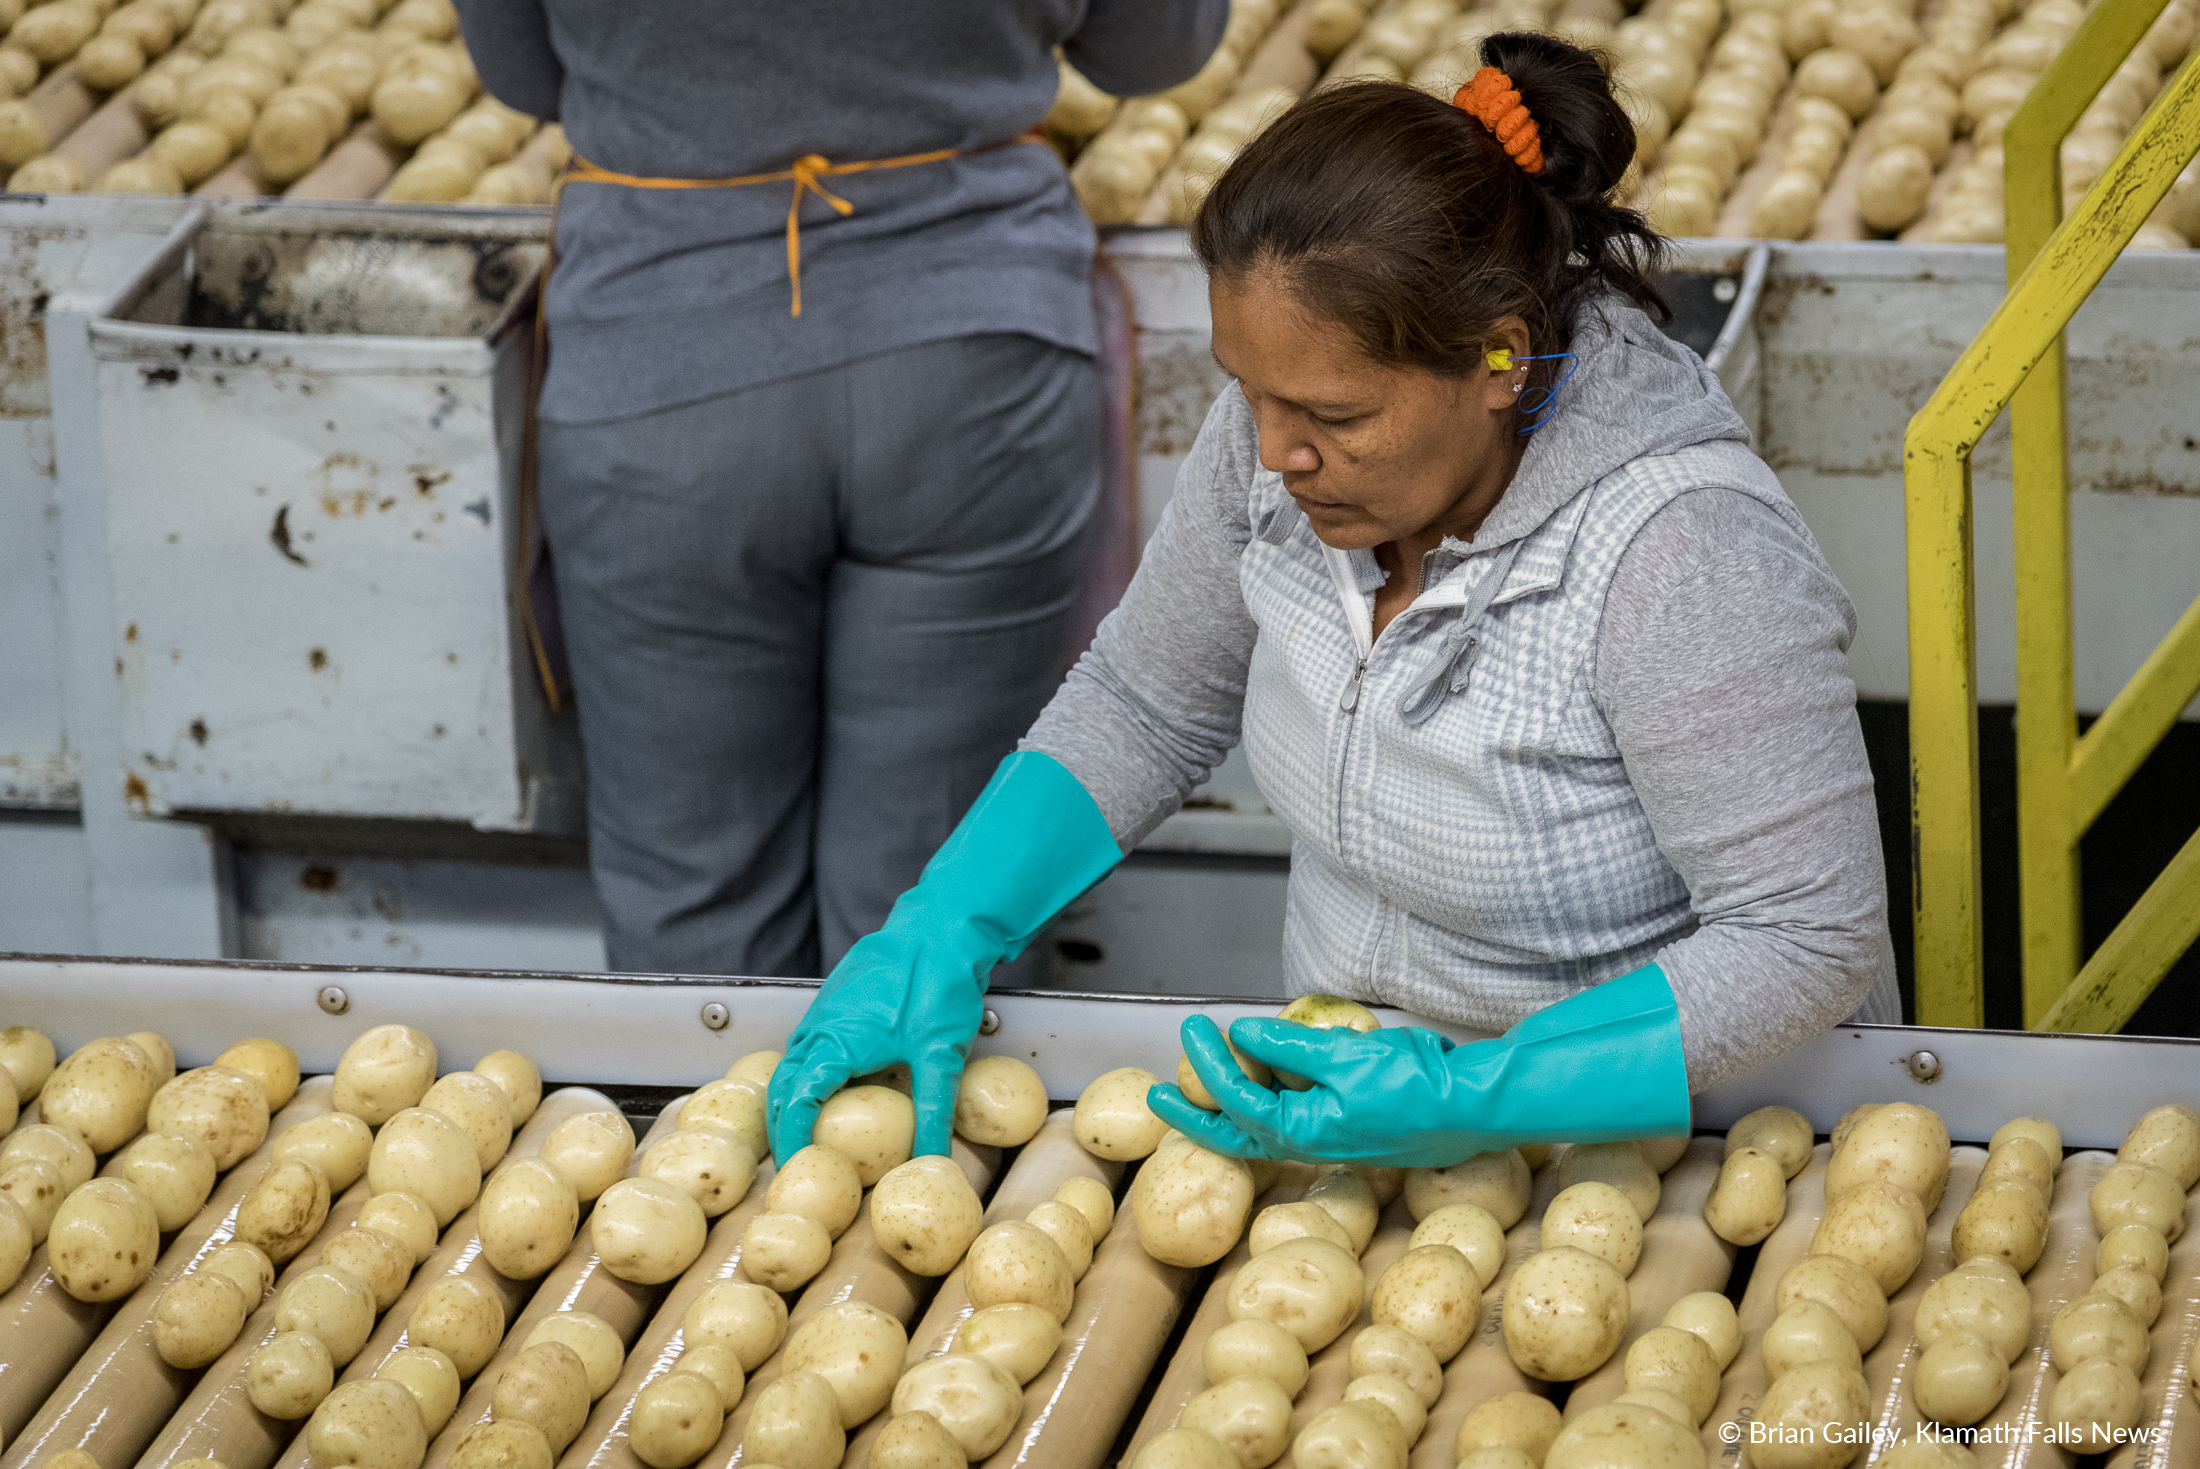 """A worker from Gold Dust Potato Processors sorts """"chipping"""" potatoes destined to be snack chips in bags of Lays Potato Chips. (Brian Gailey)"""